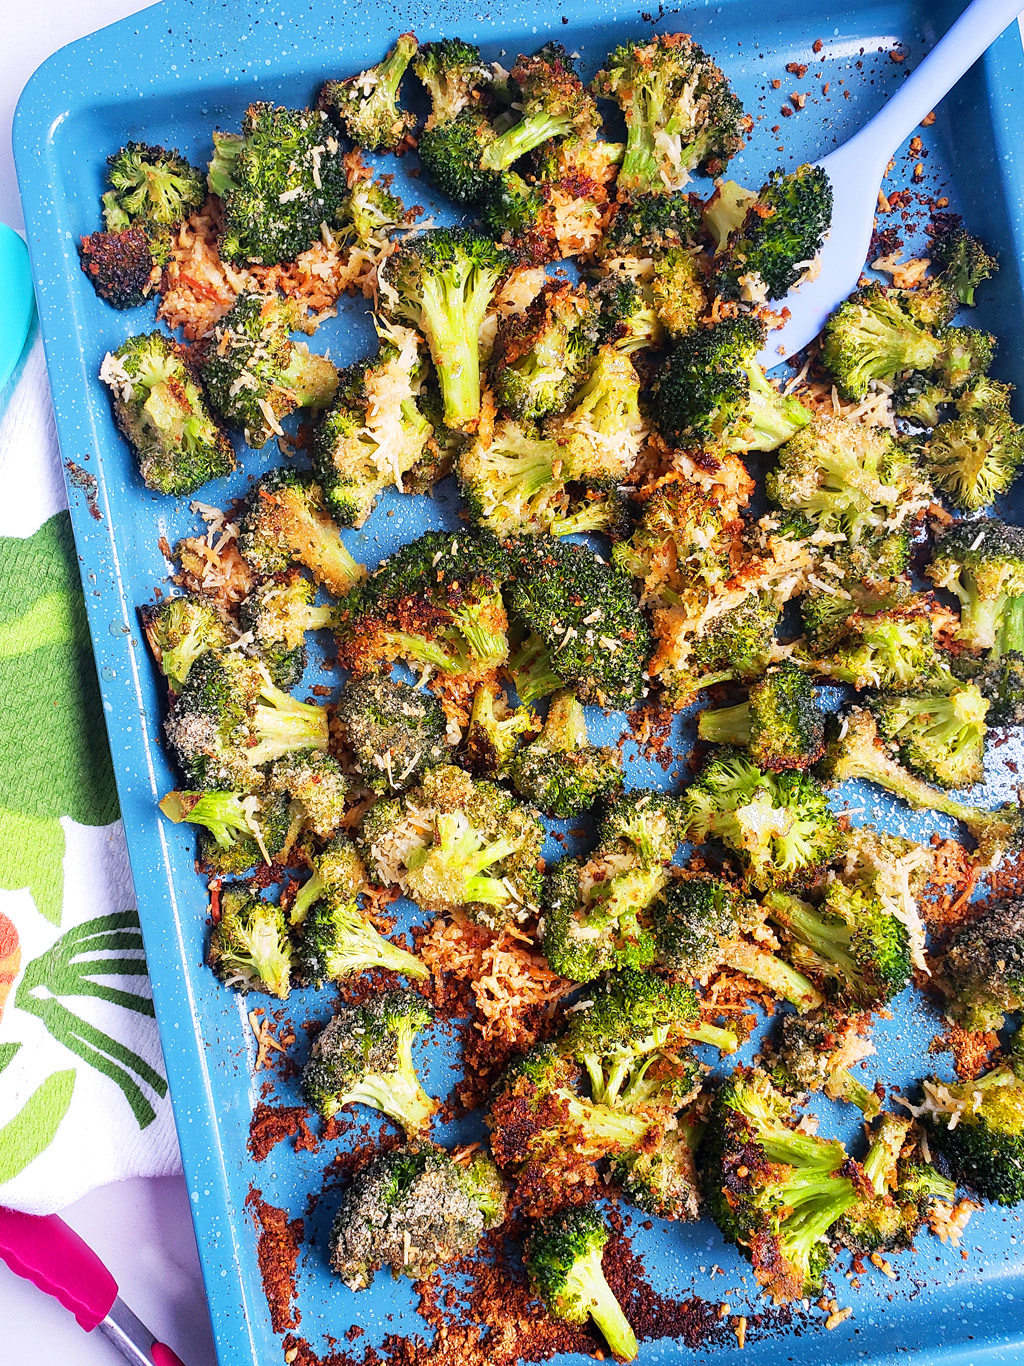 Quick & Easy Parmesan Roasted Broccoli